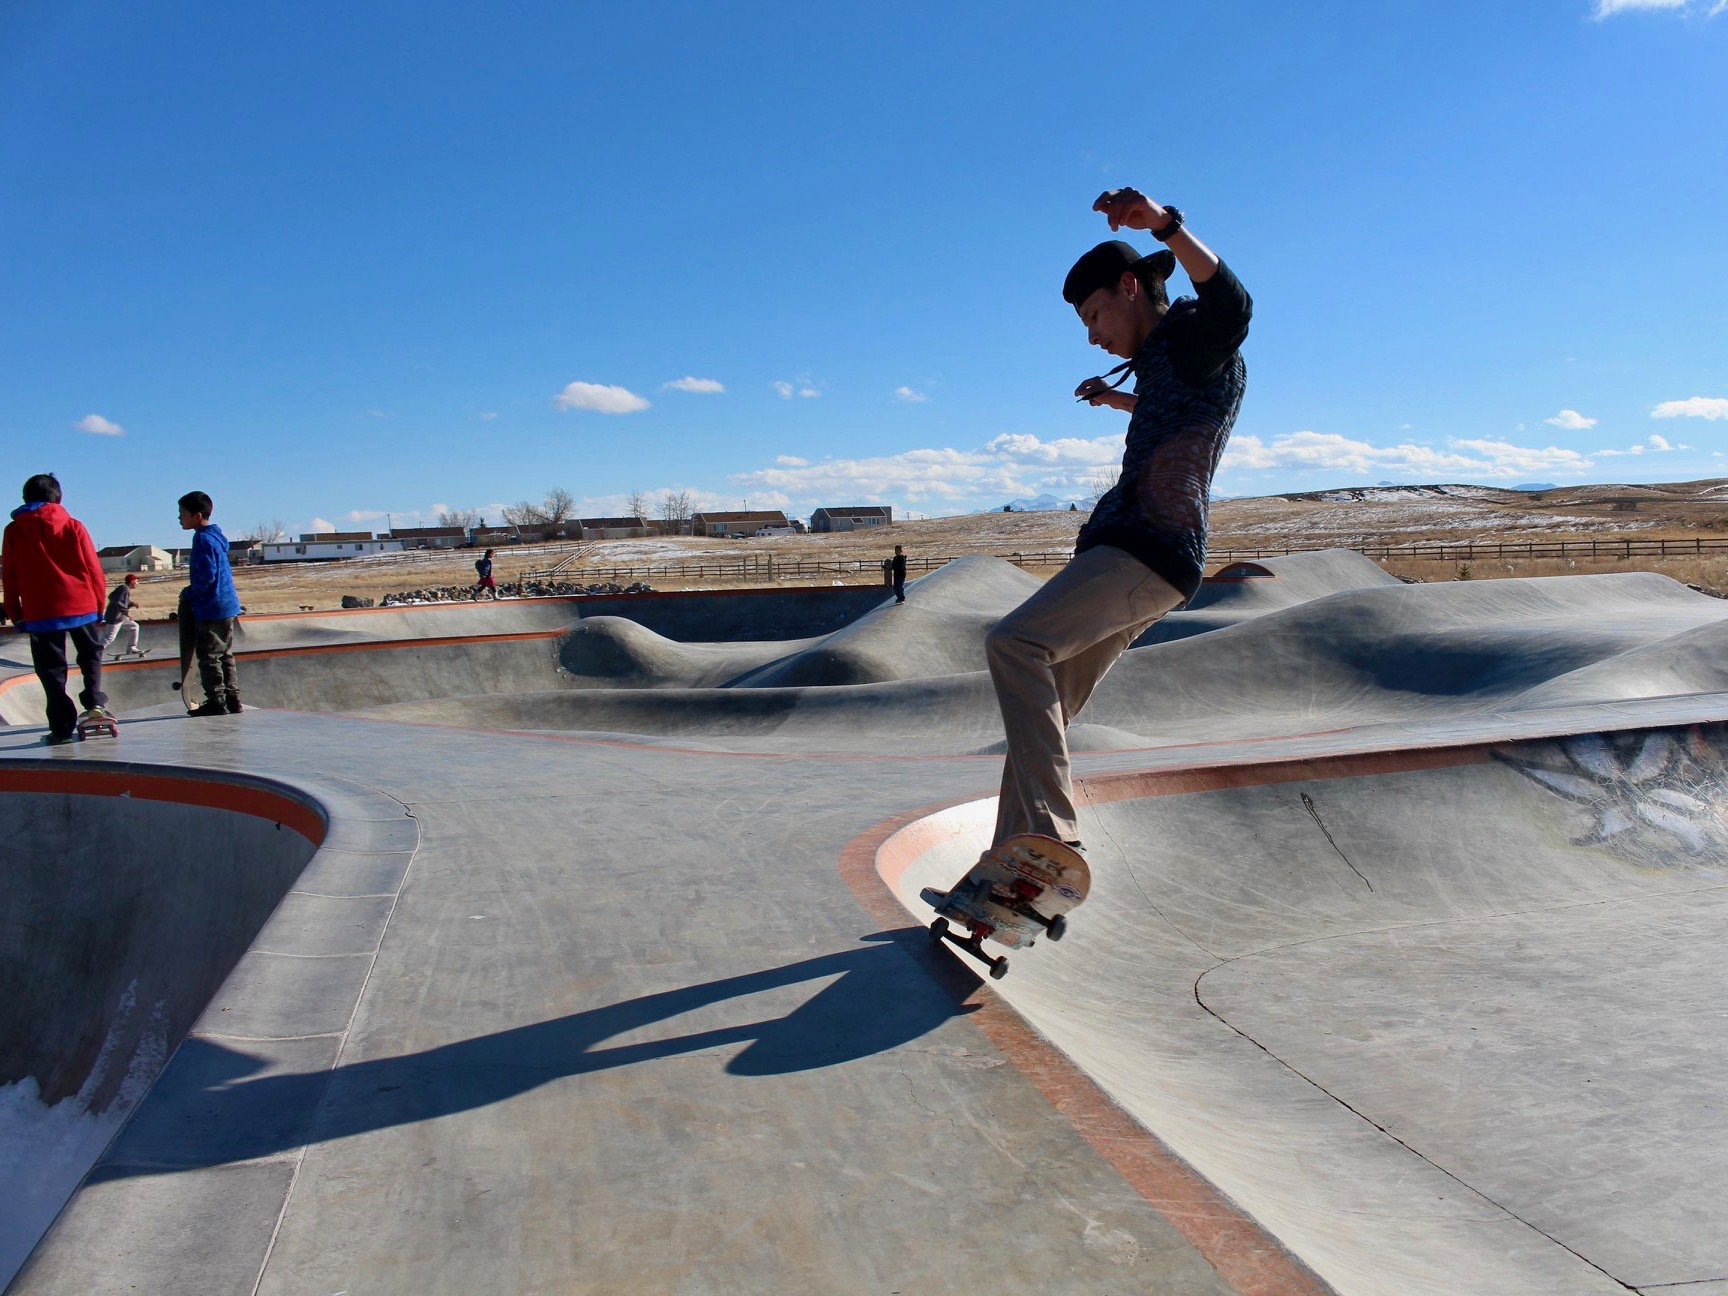 Chippewa Cree Tribe breaks ground on youth-driven skate park on reservation